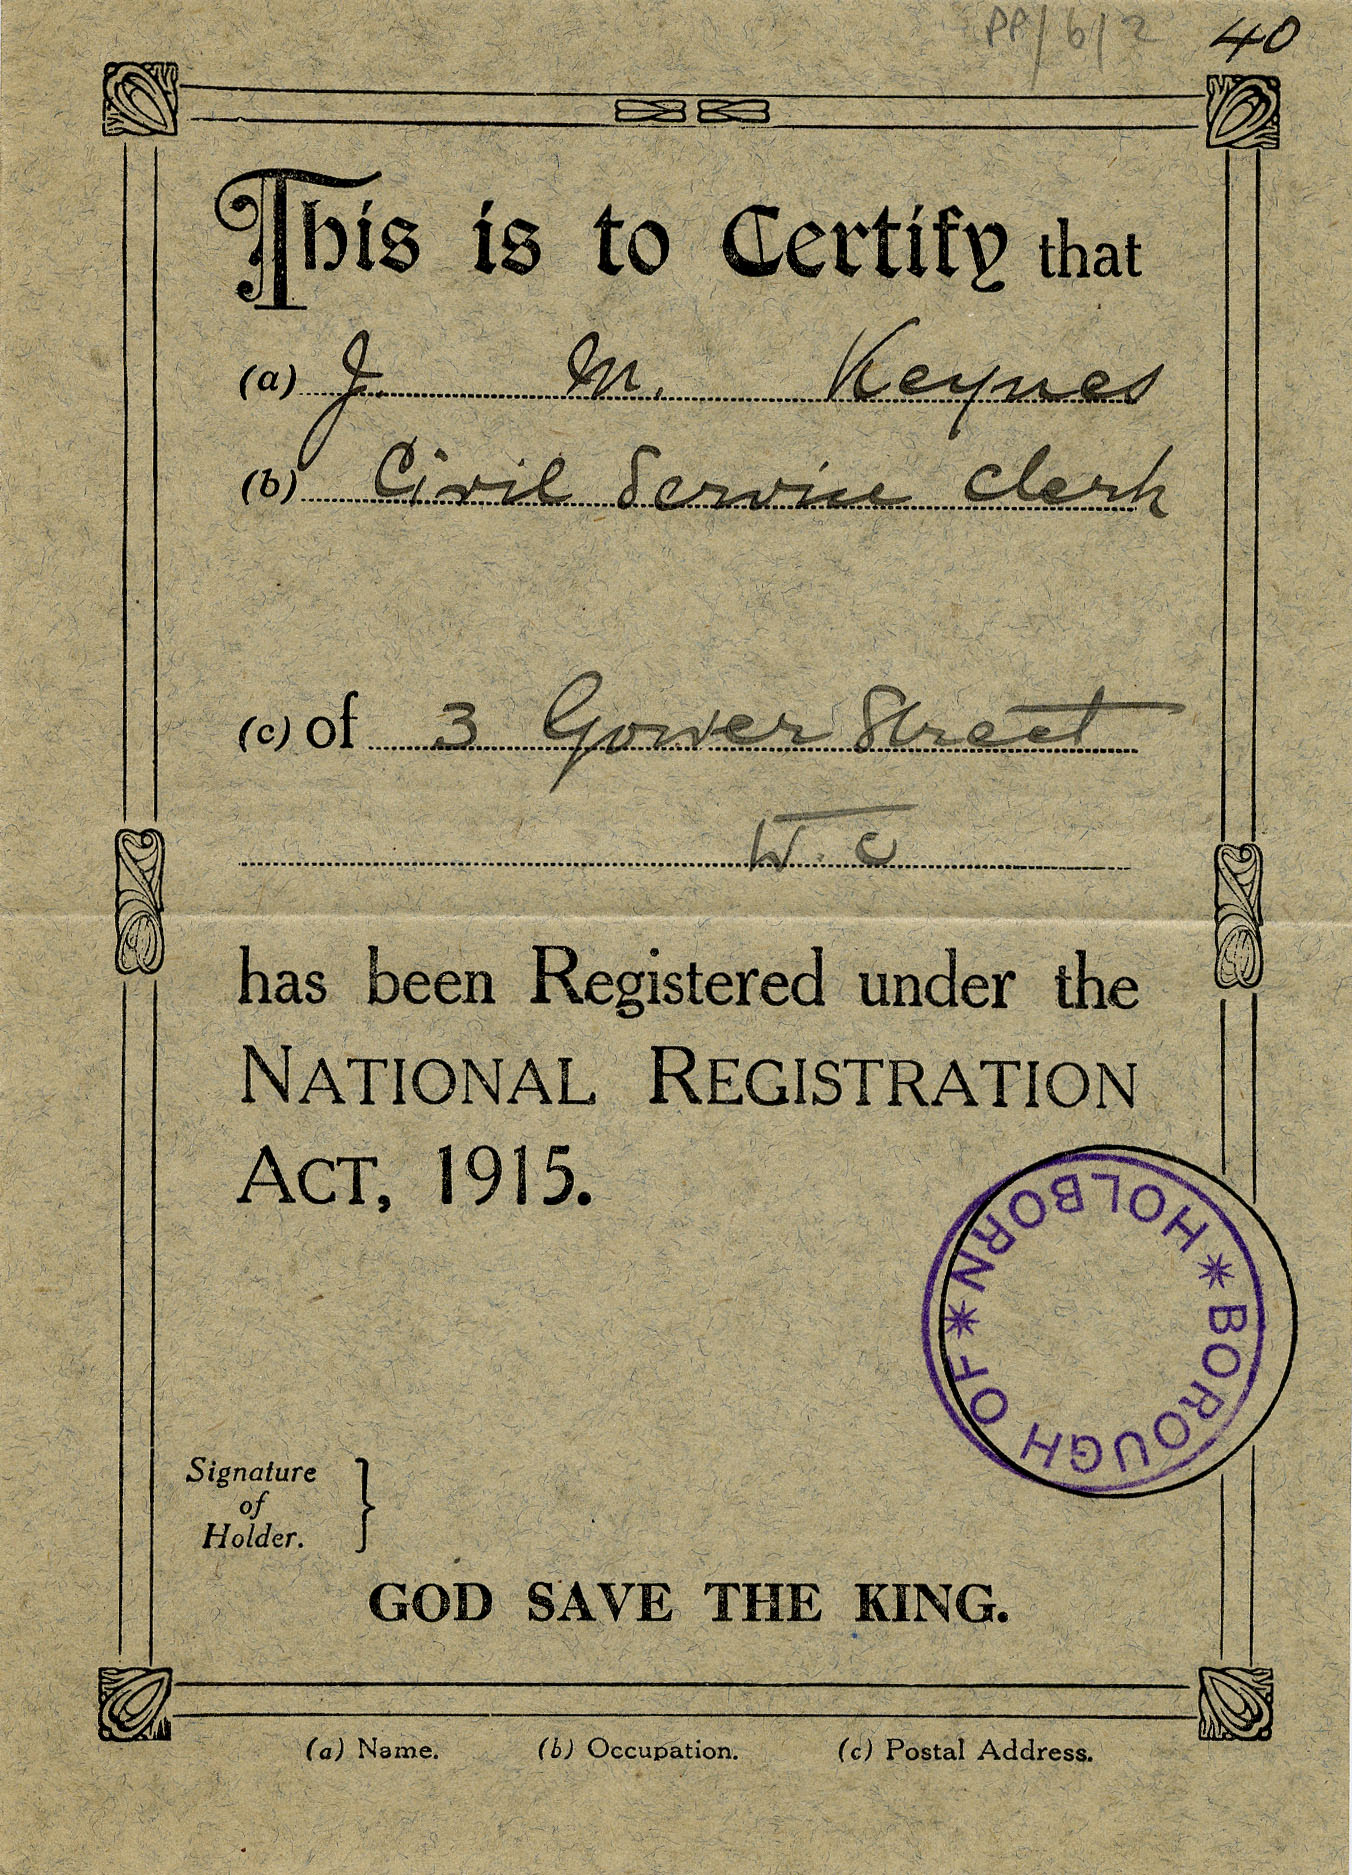 Certificate of J.M. Keynes' registration in the London borough of Holborn under the National Registration Act, 1915 (JMK/PP/6/2)